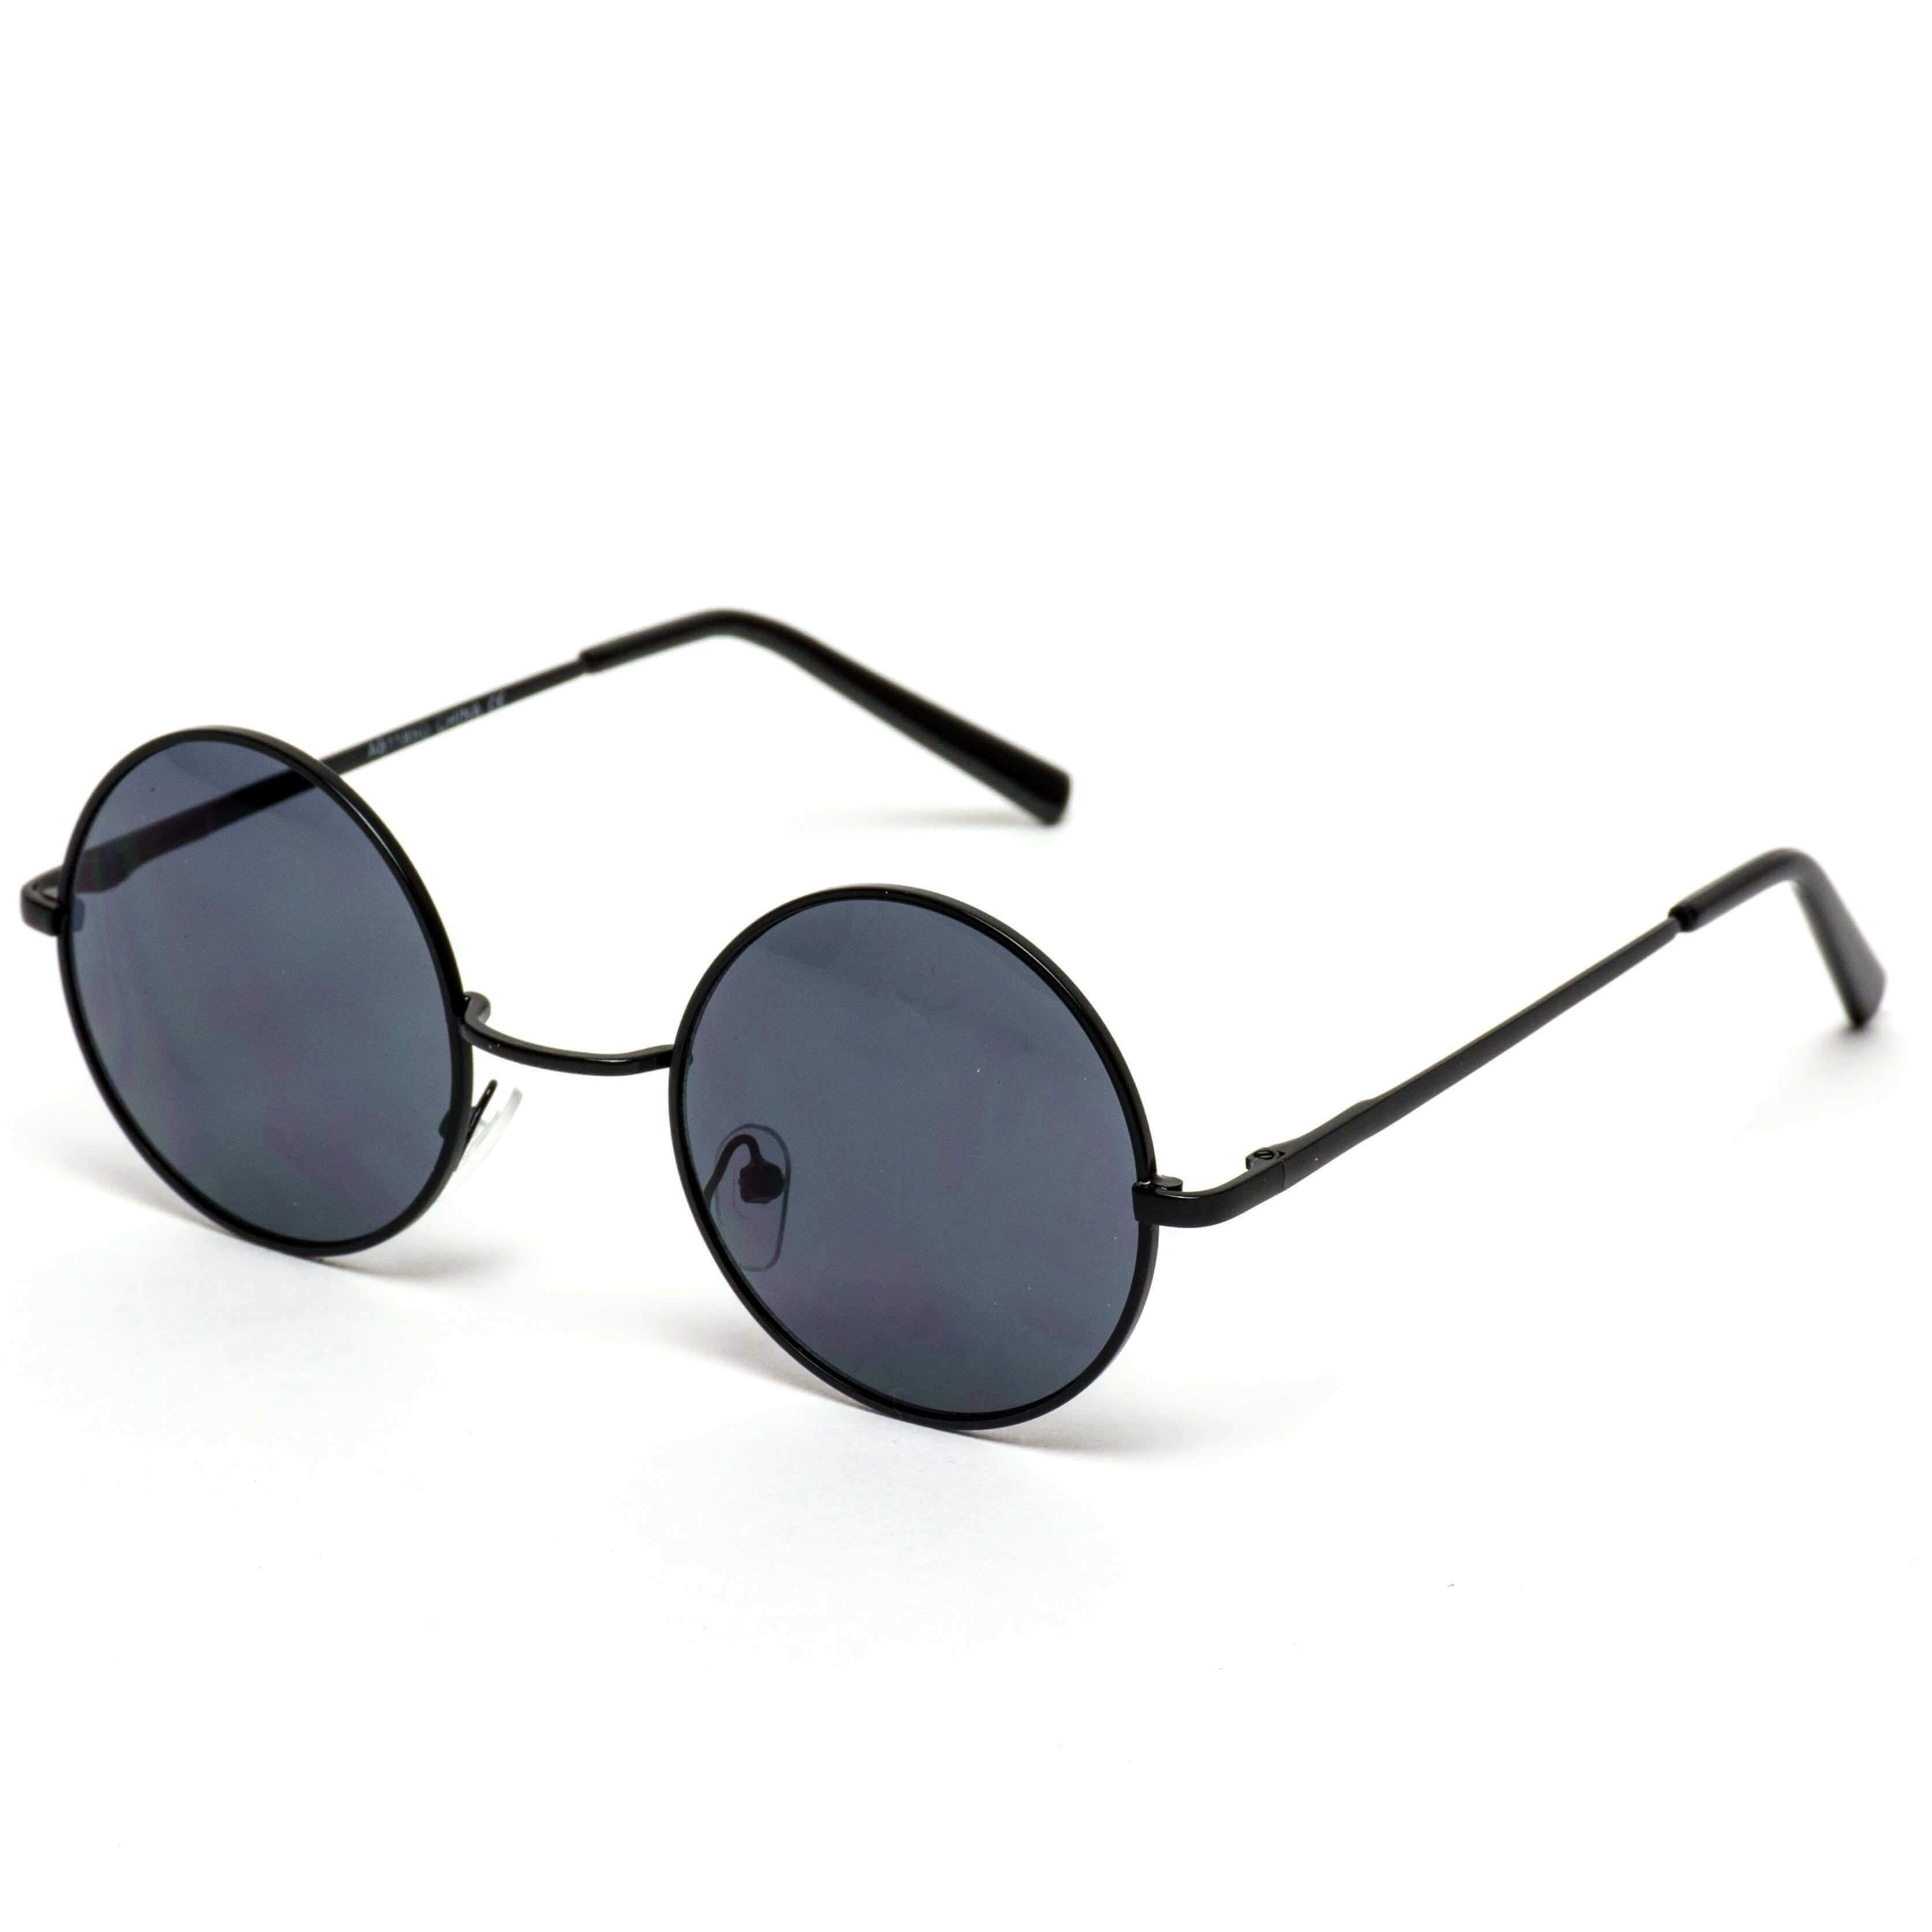 a9f28383c2e11 Retro Round Metal Hippie John Lennon Inspired Sunglasses Classic pair of  small round sunglasses to add a retro feel to your outfit!